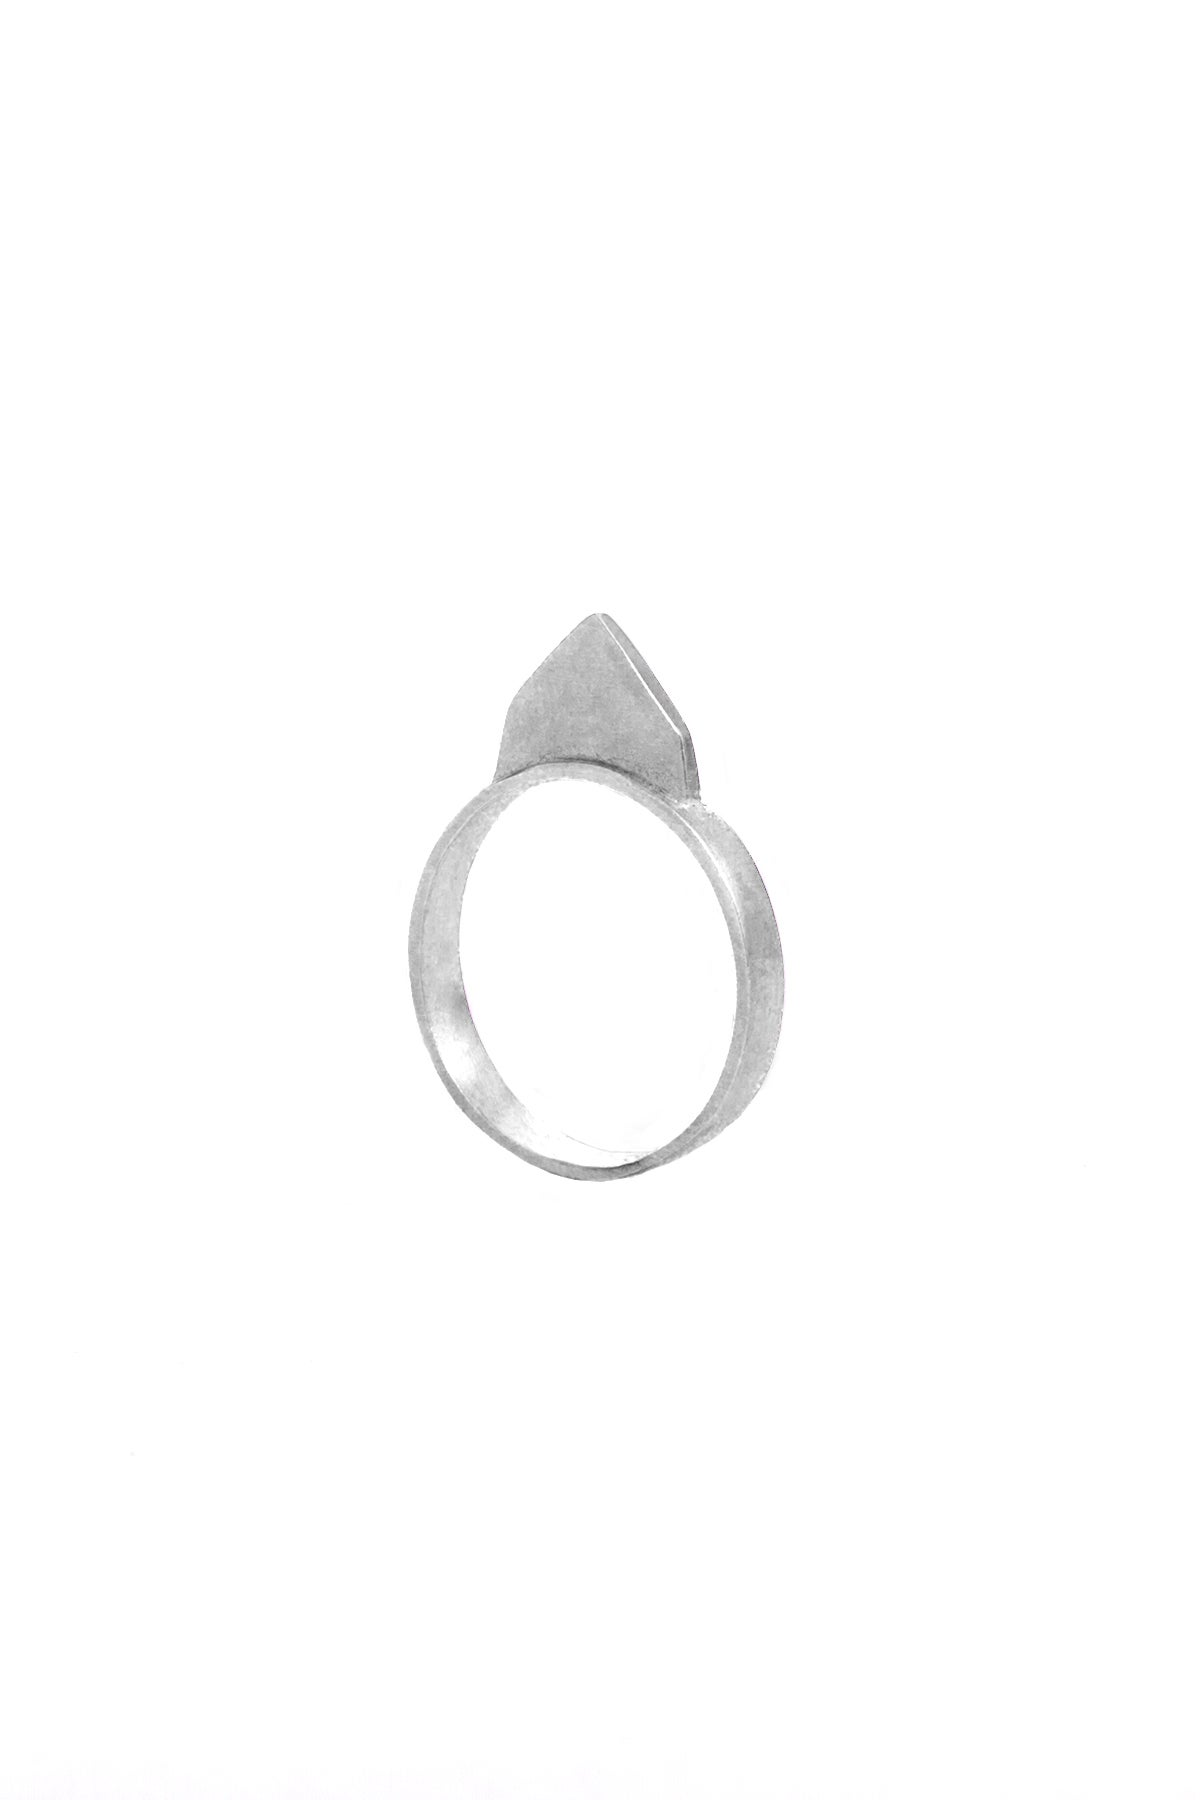 Image of BRUISER RING - SILVER